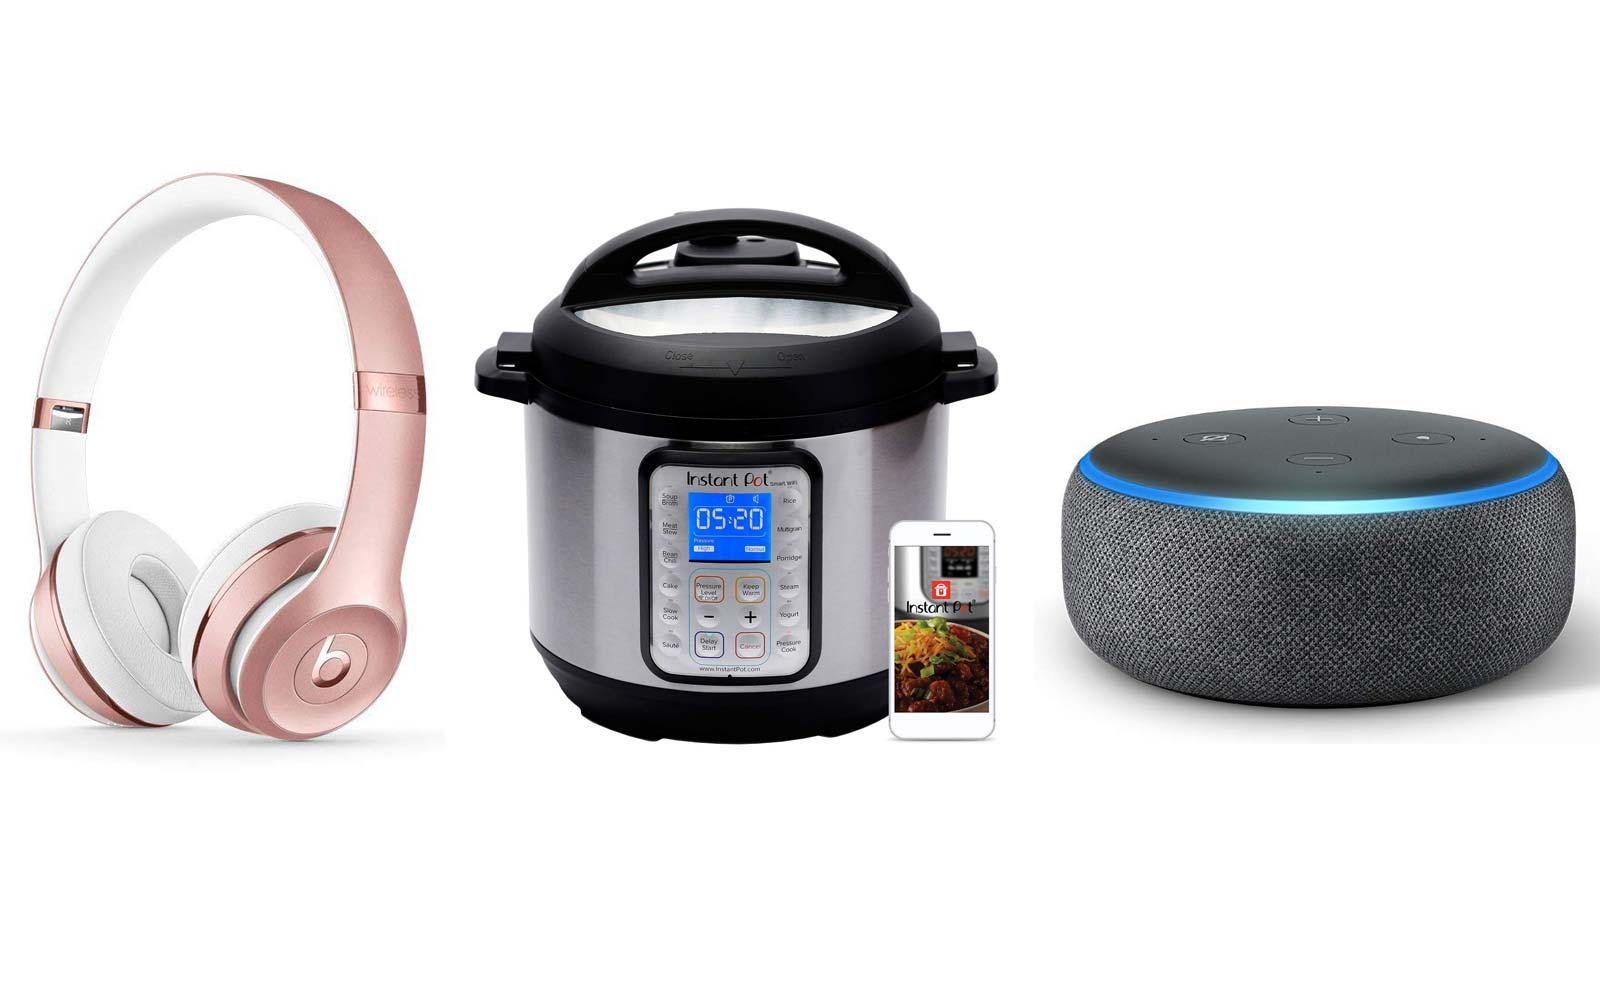 These Last-minute Gift Deals on Amazon Are a Procrastinator's Dream